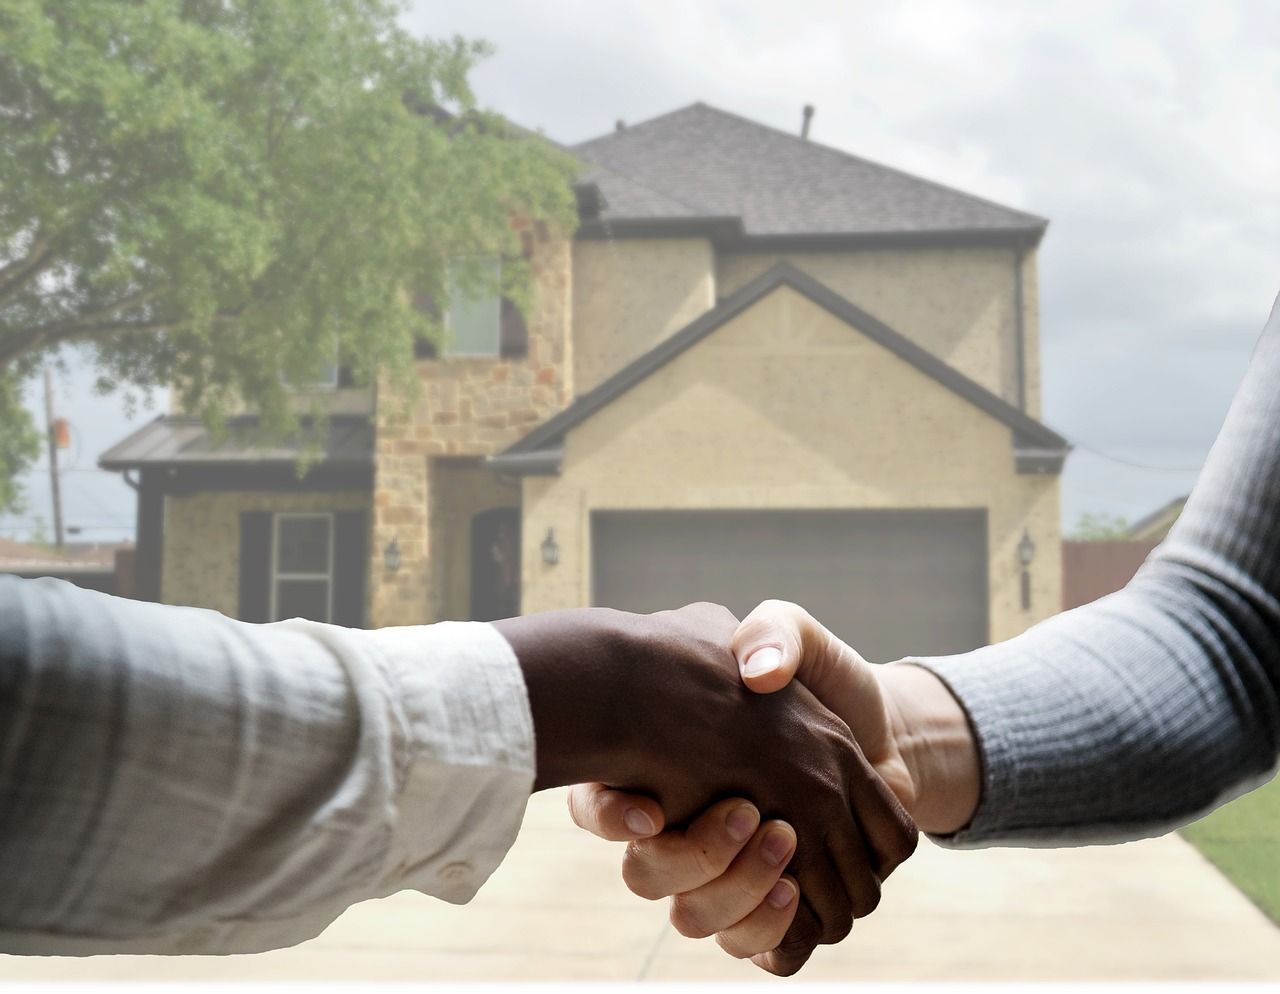 People shaking hands after closing the home selling deal.